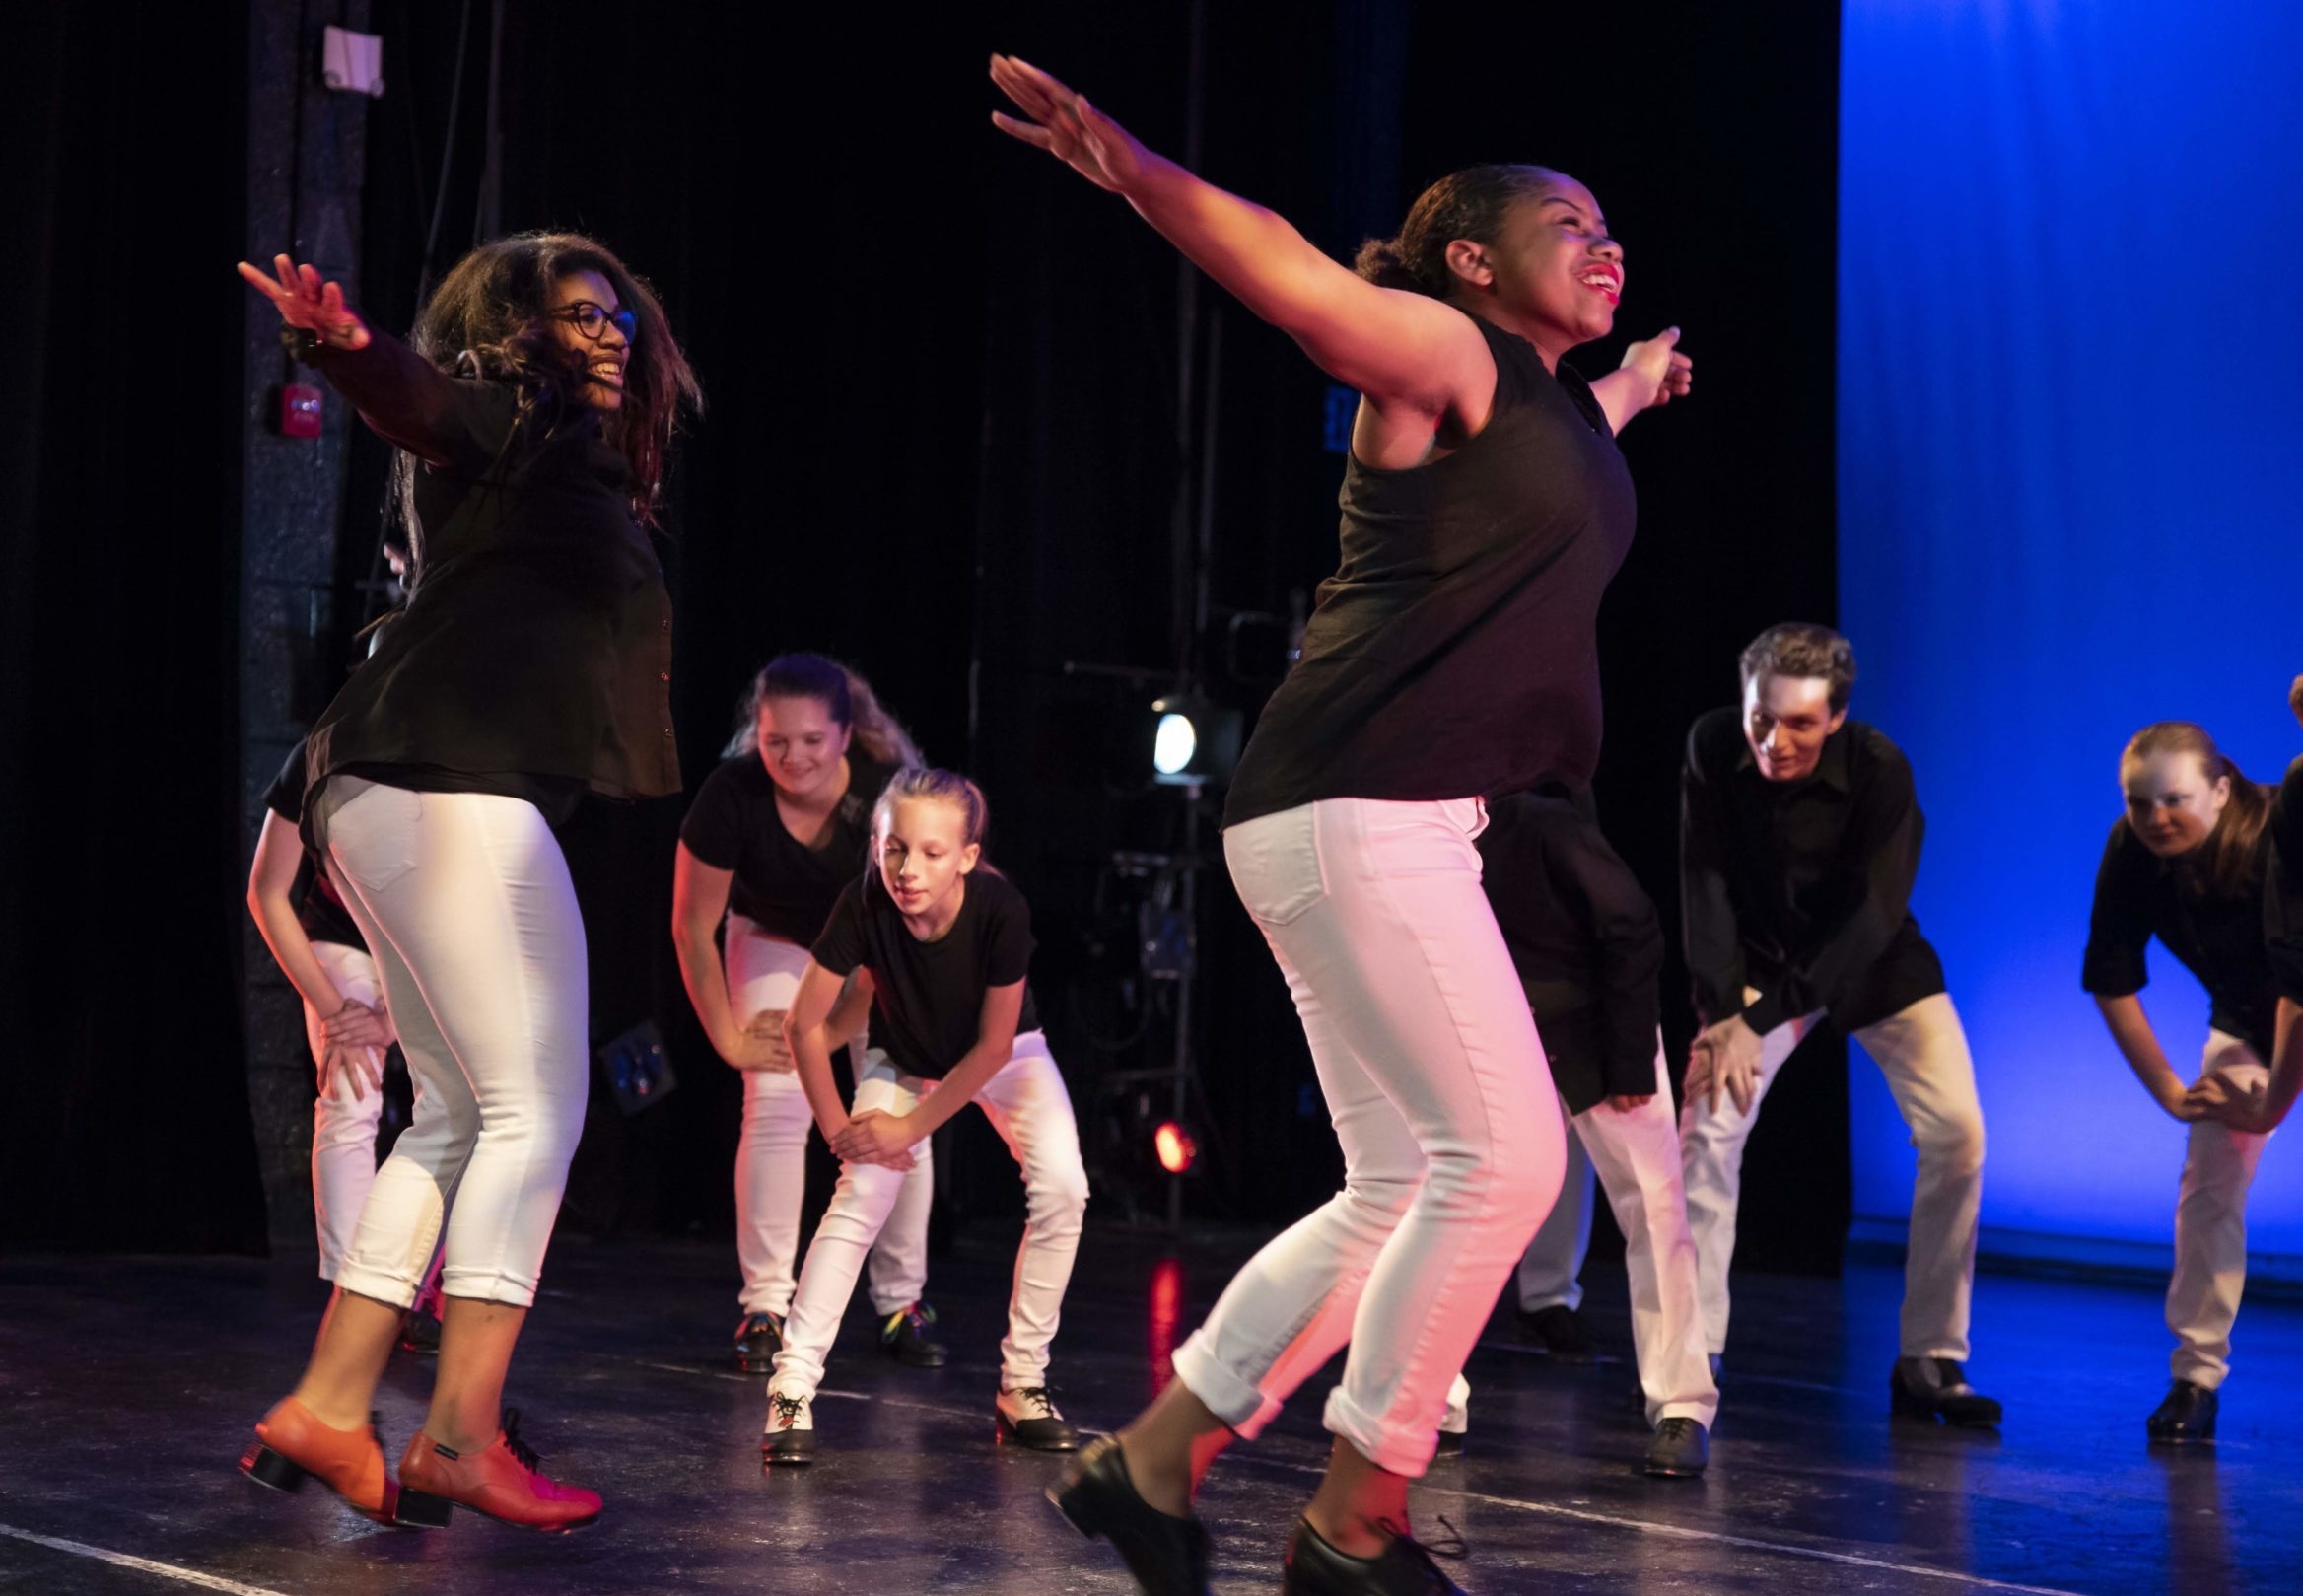 A group of teenage dancers performs onstage in white pants, black shirts and tap shoes